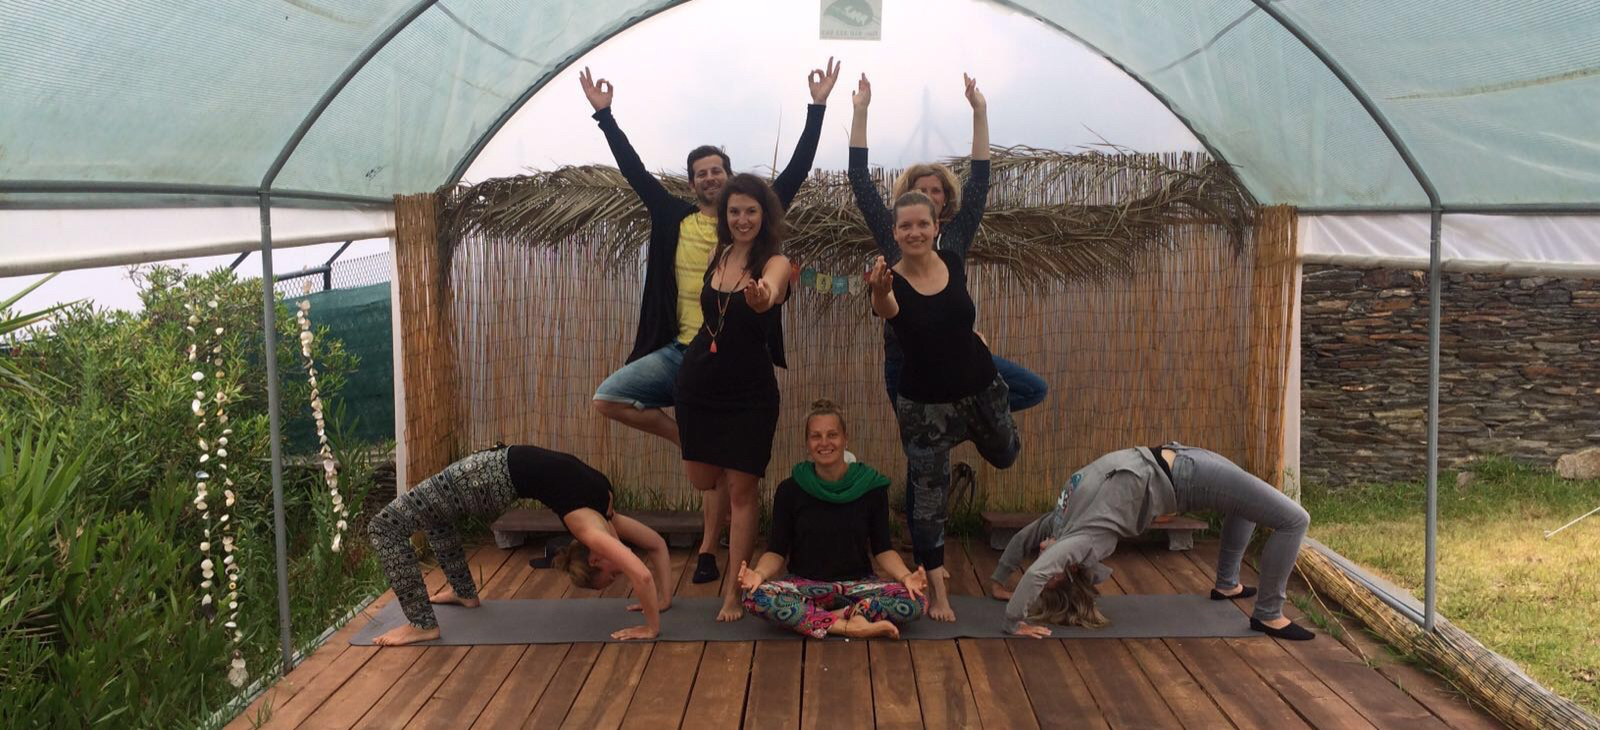 Yoga classes at ElementFish surfcamp, Portugal